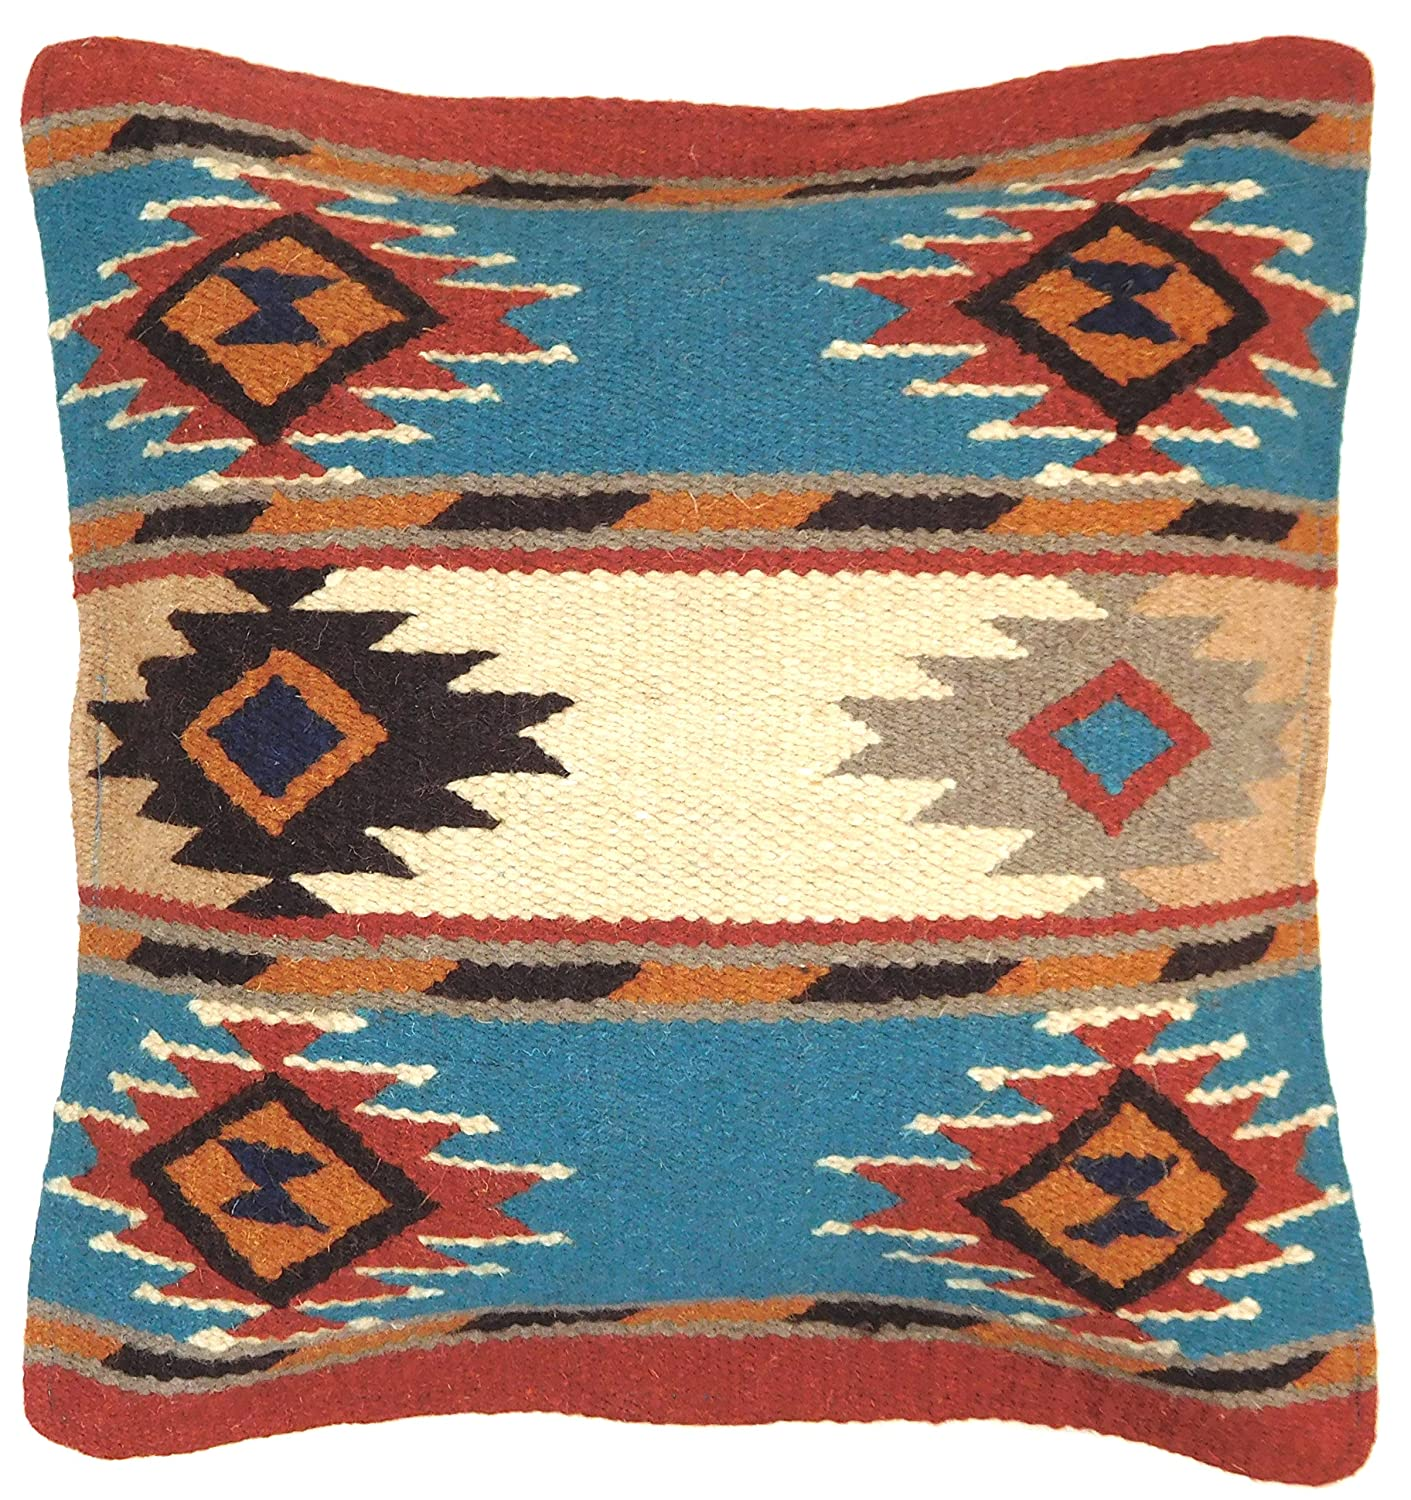 Amazon.com: Throw Pillow Covers, 17 X 17, Hand Woven in Southwest ...